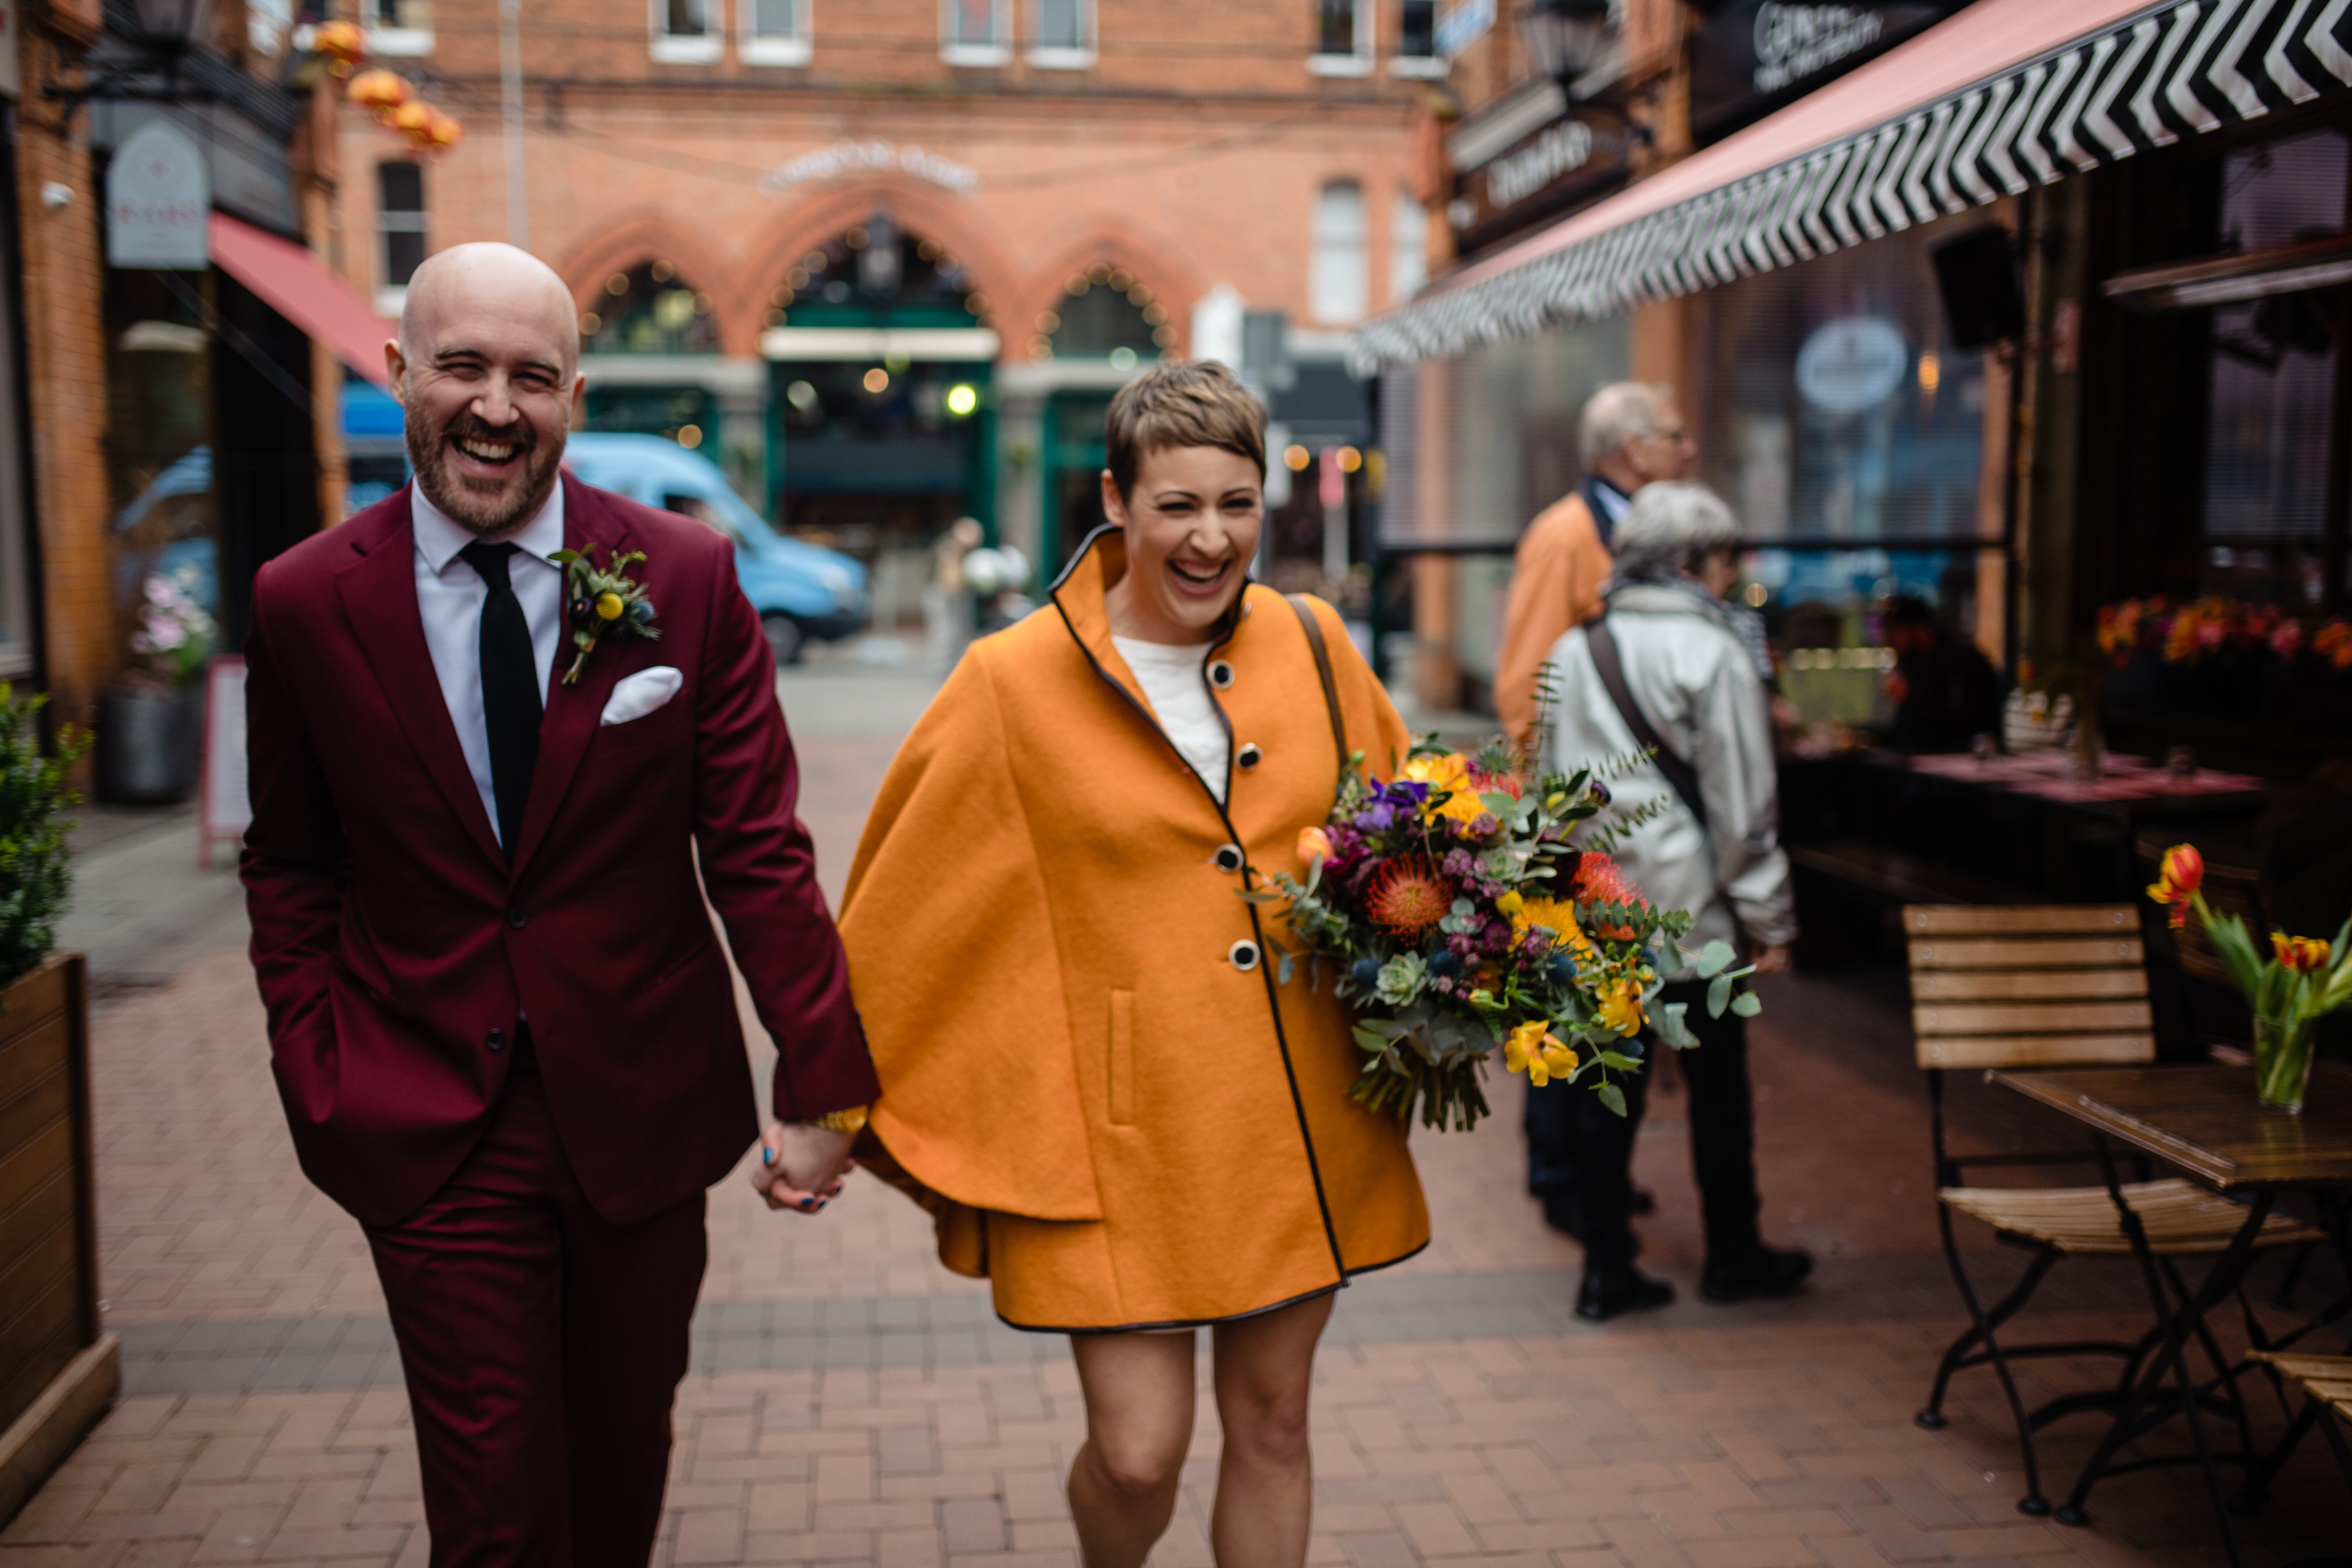 Bride and groom fashion statement in streetscape - photo by John Gillooley